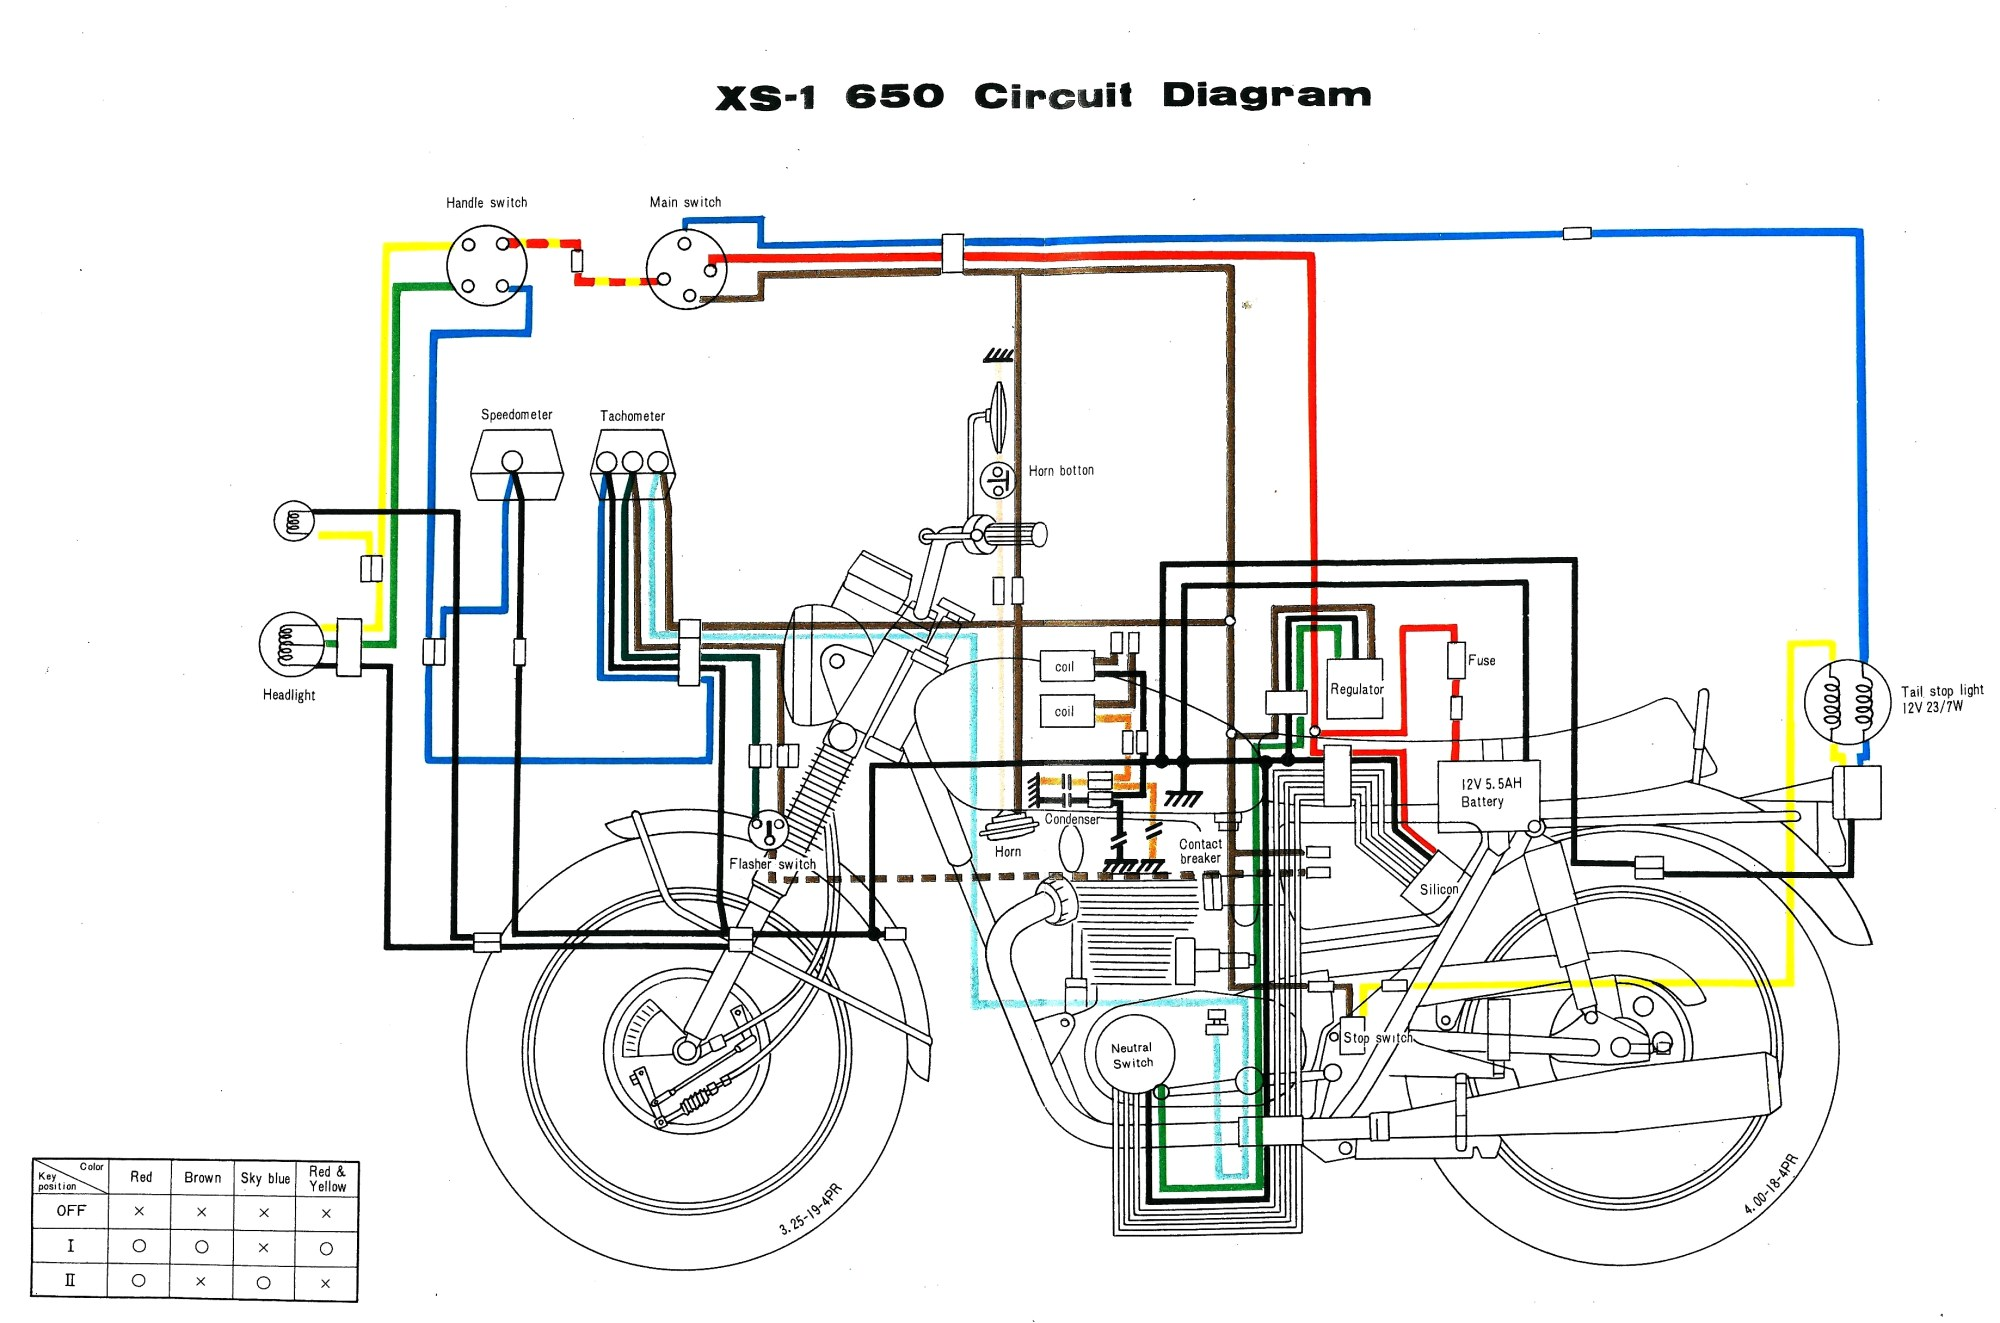 hight resolution of 1977 xs650 wiring diagram wiring diagram db yamaha xs1100 wiring diagram 1977 xs650 wiring diagram wiring